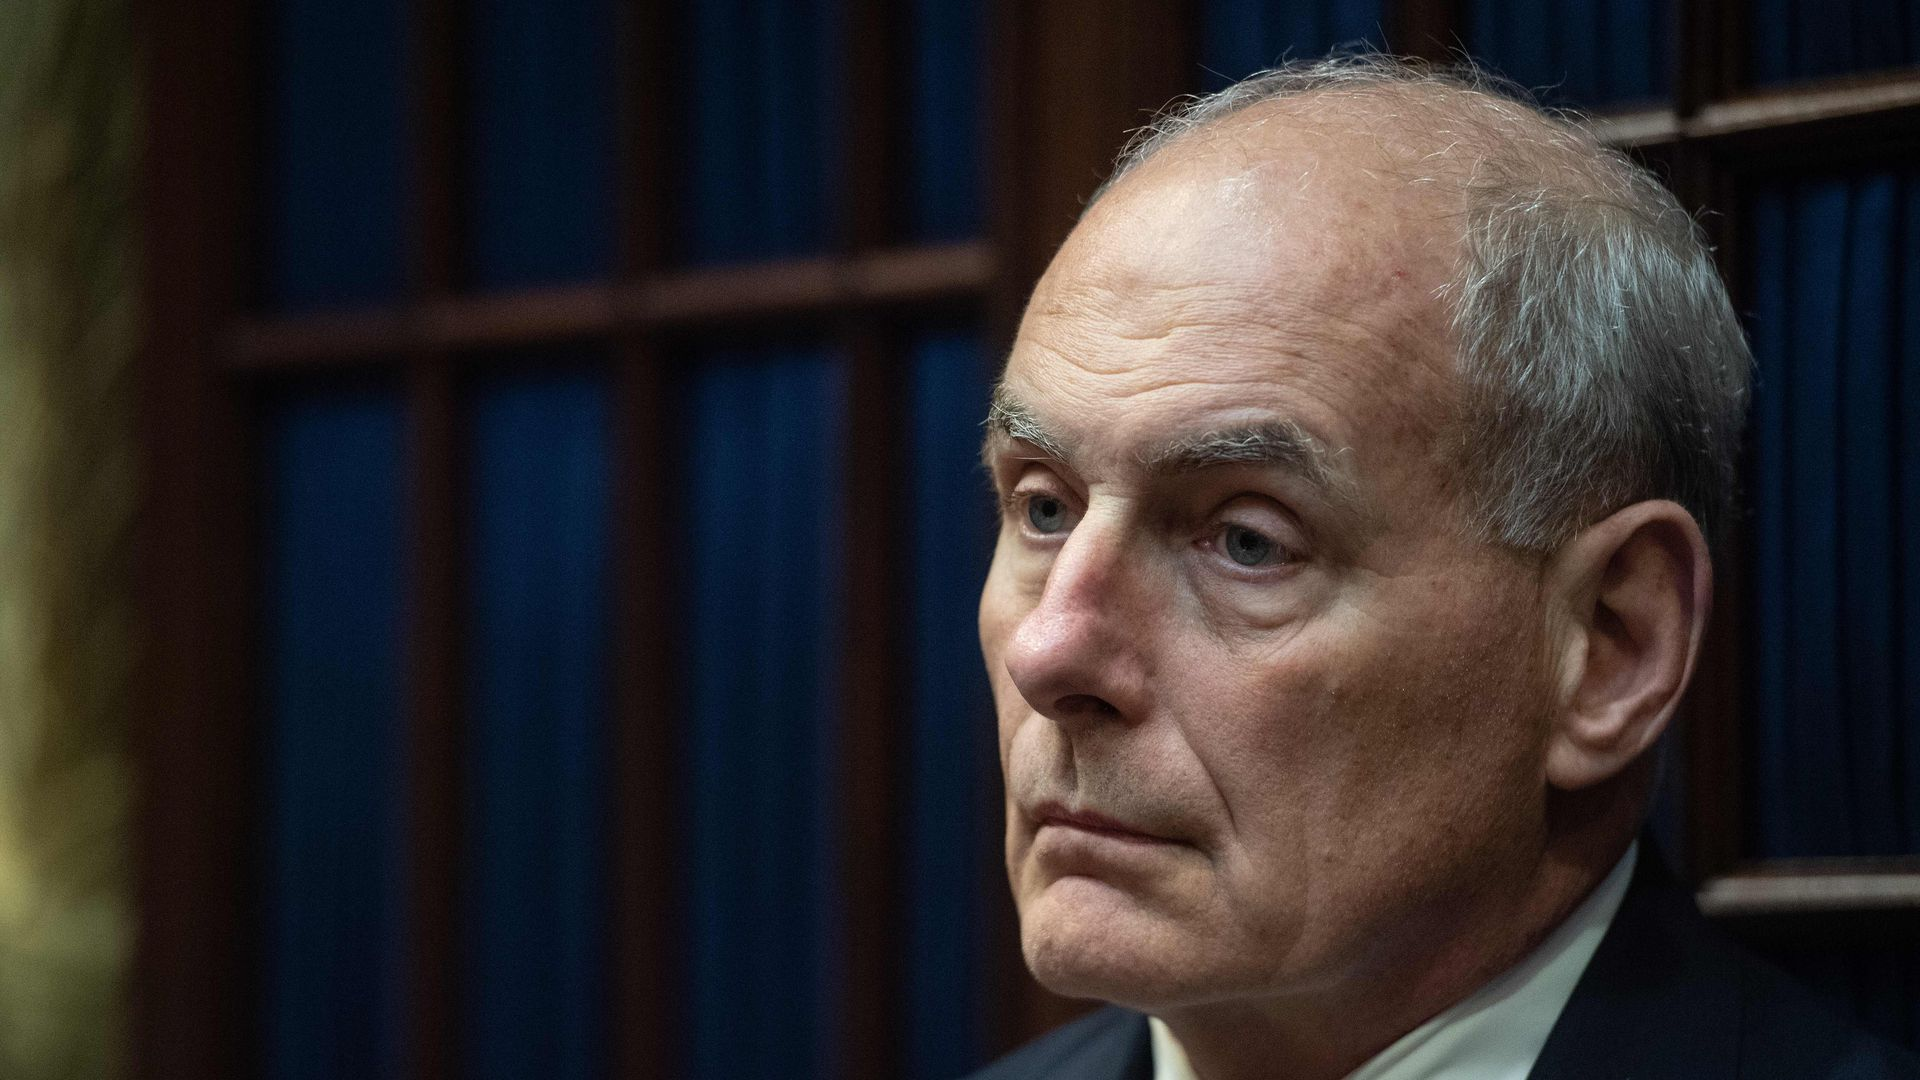 John Kelly looks despondent.